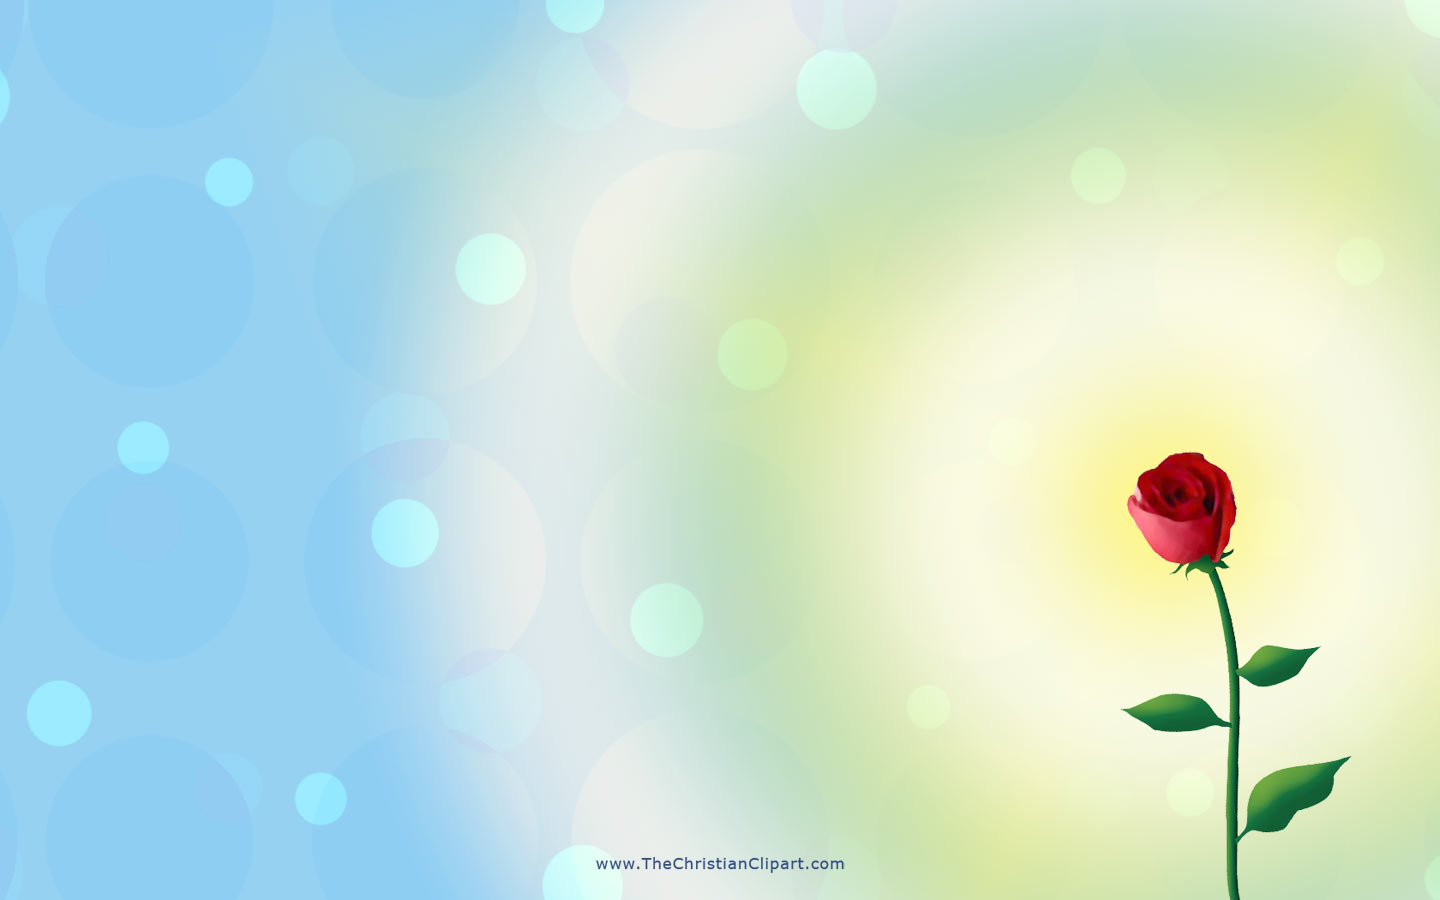 Wedding rose background was